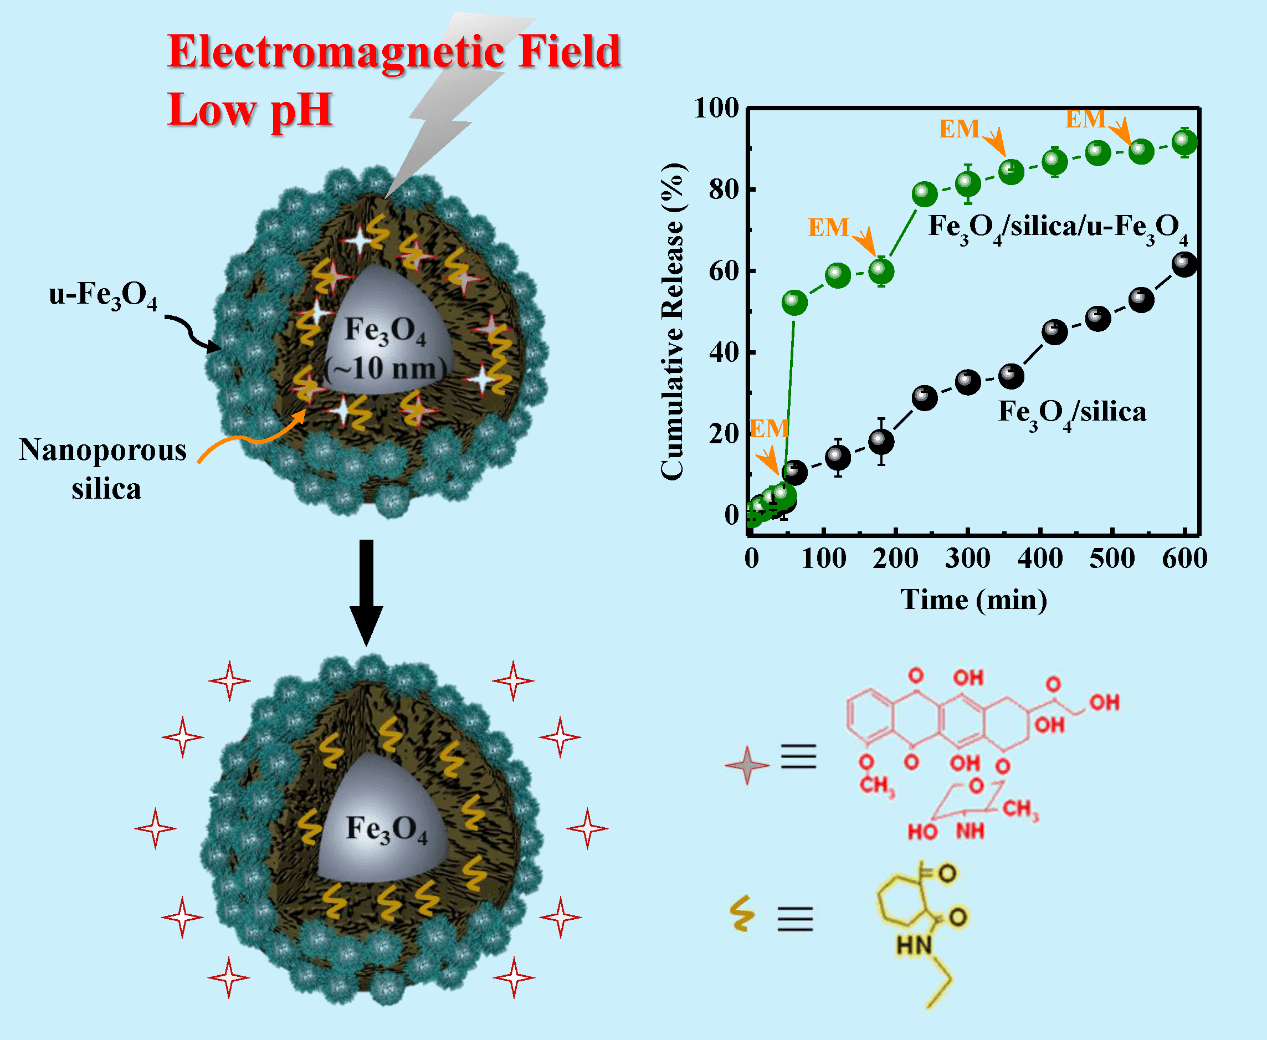 pH and Electromagnetic Dual-Remoted Drug Delivery Based on Bimodal Superparamagnetic Fe3O4@Porous Silica Nanoparticles